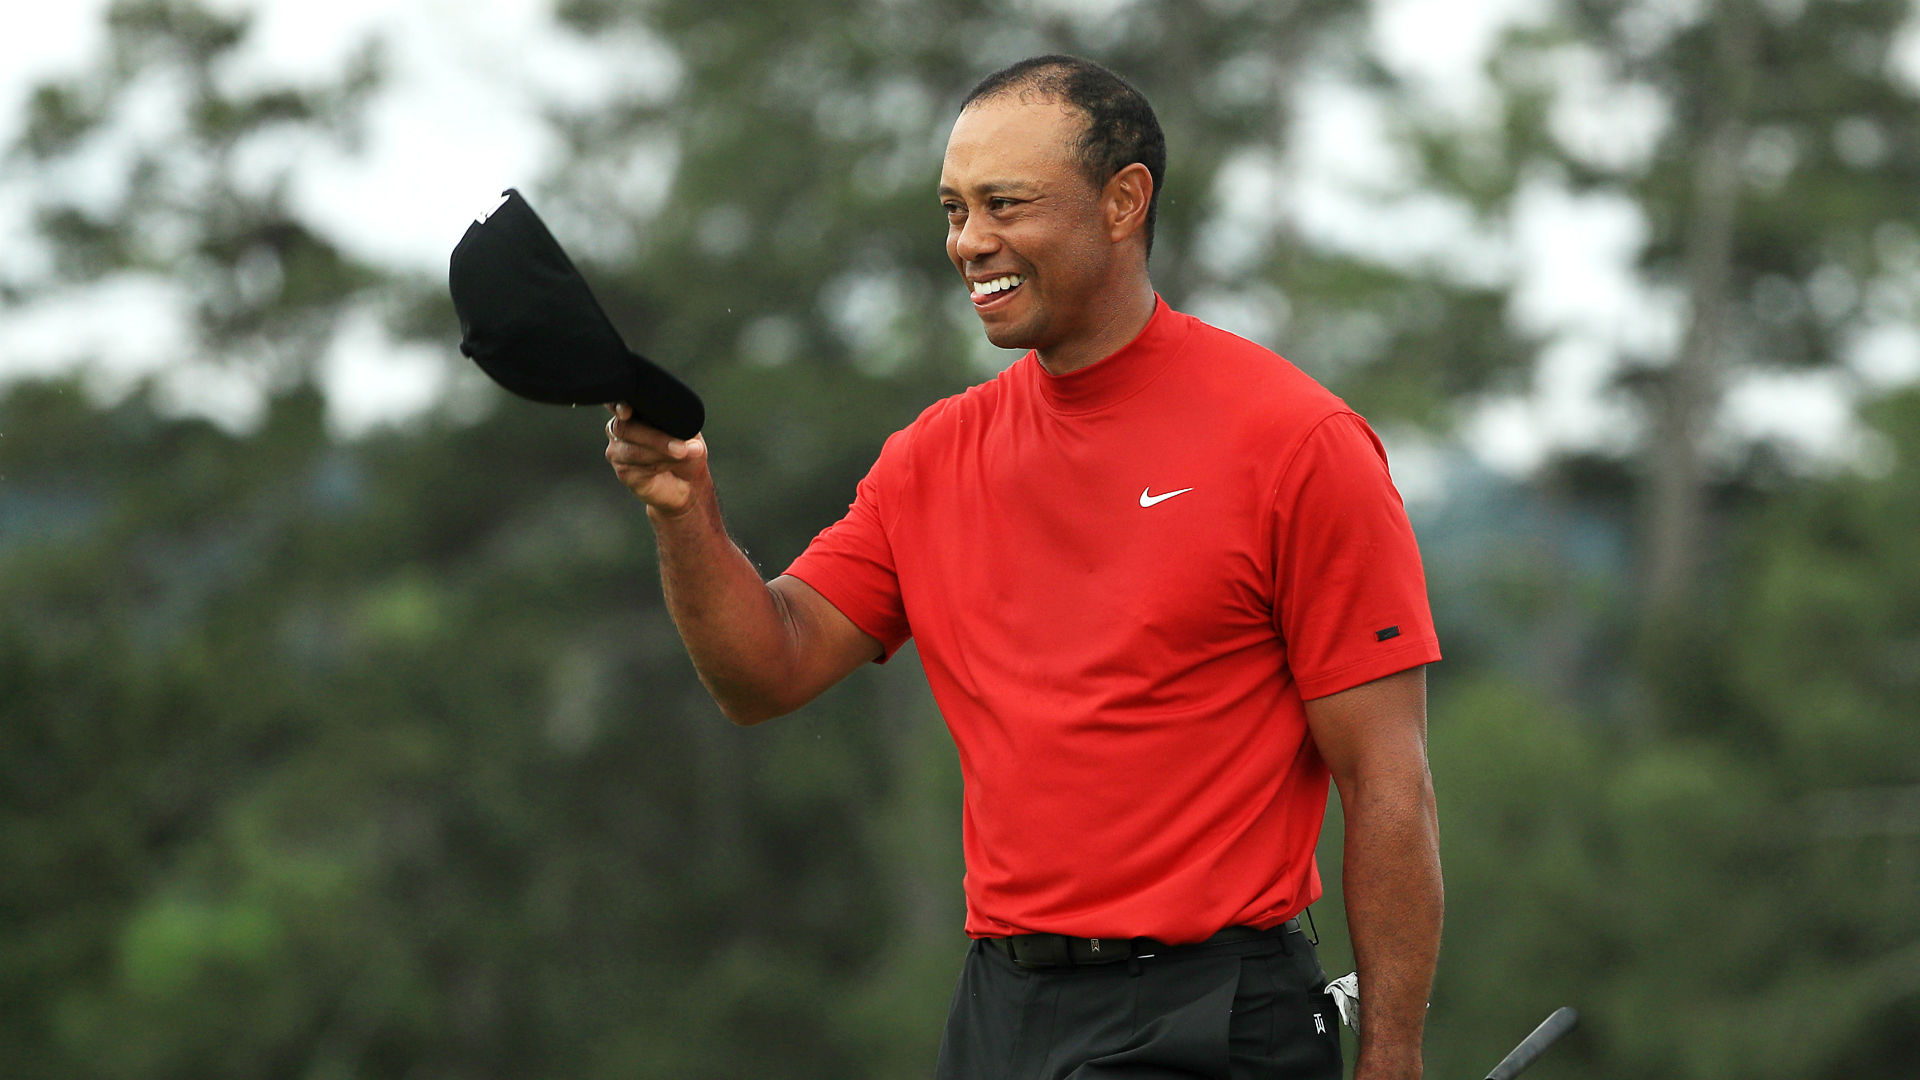 Tiger Woods timeline: Fall and rise of a superstar as he matches Snead wins record